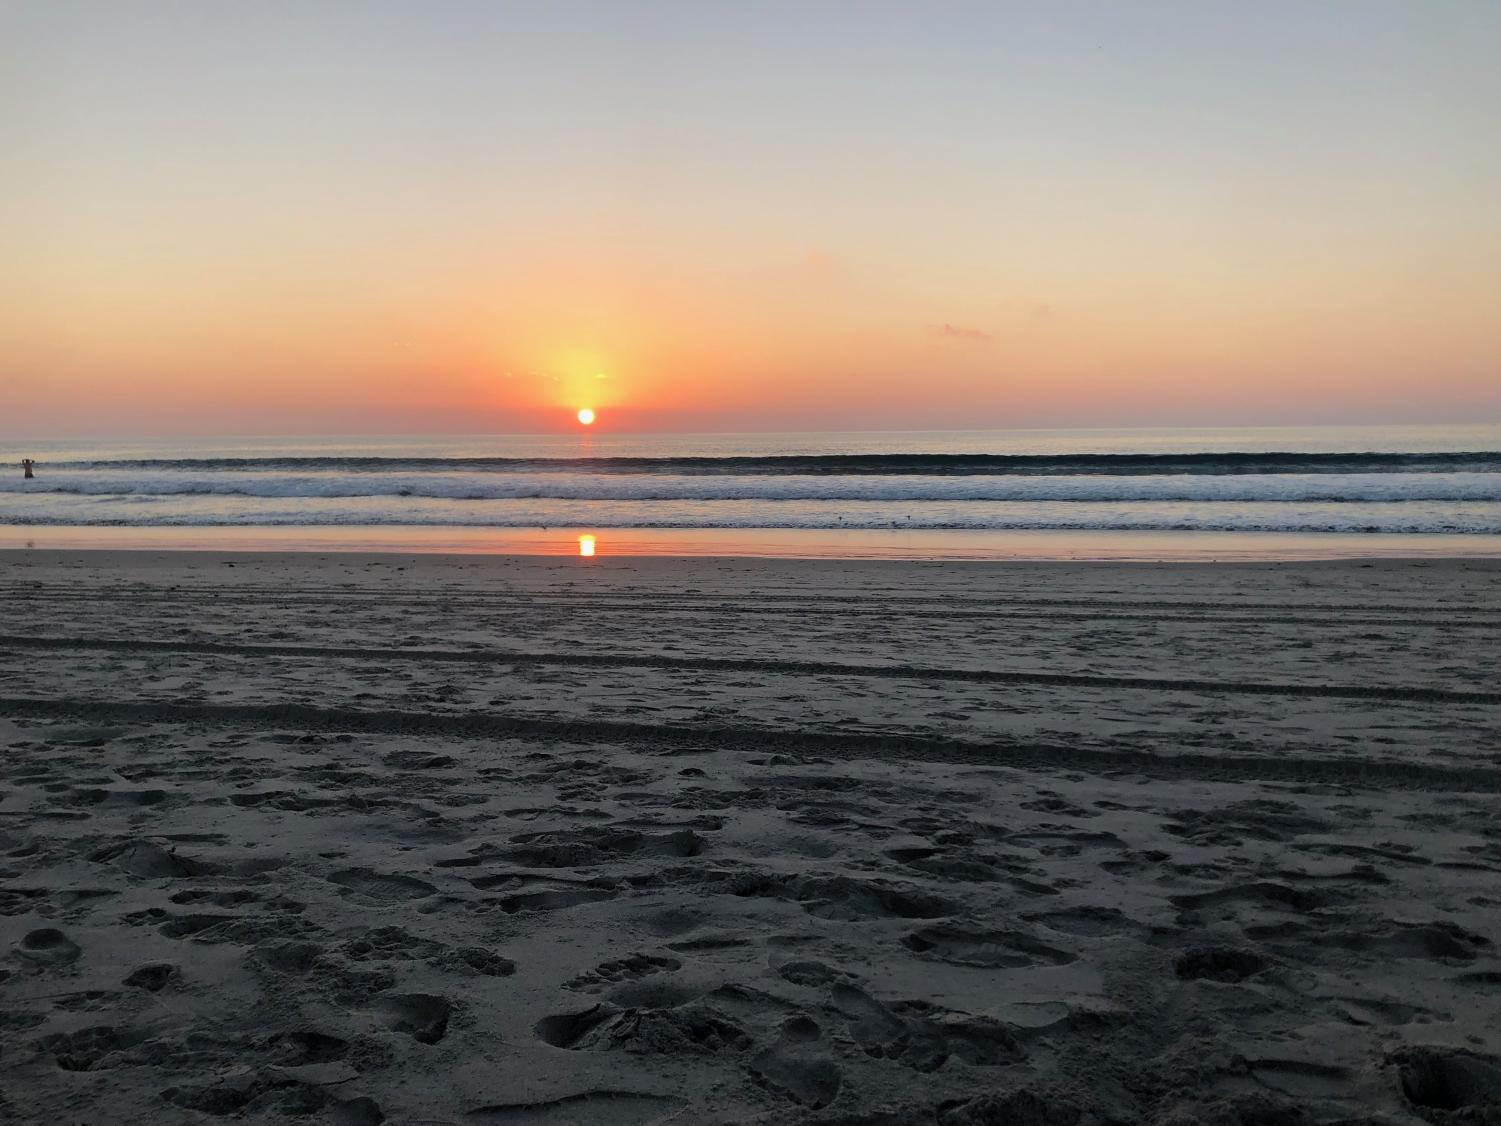 Solana beach is a great place to take some scenic pictures during Spring break.